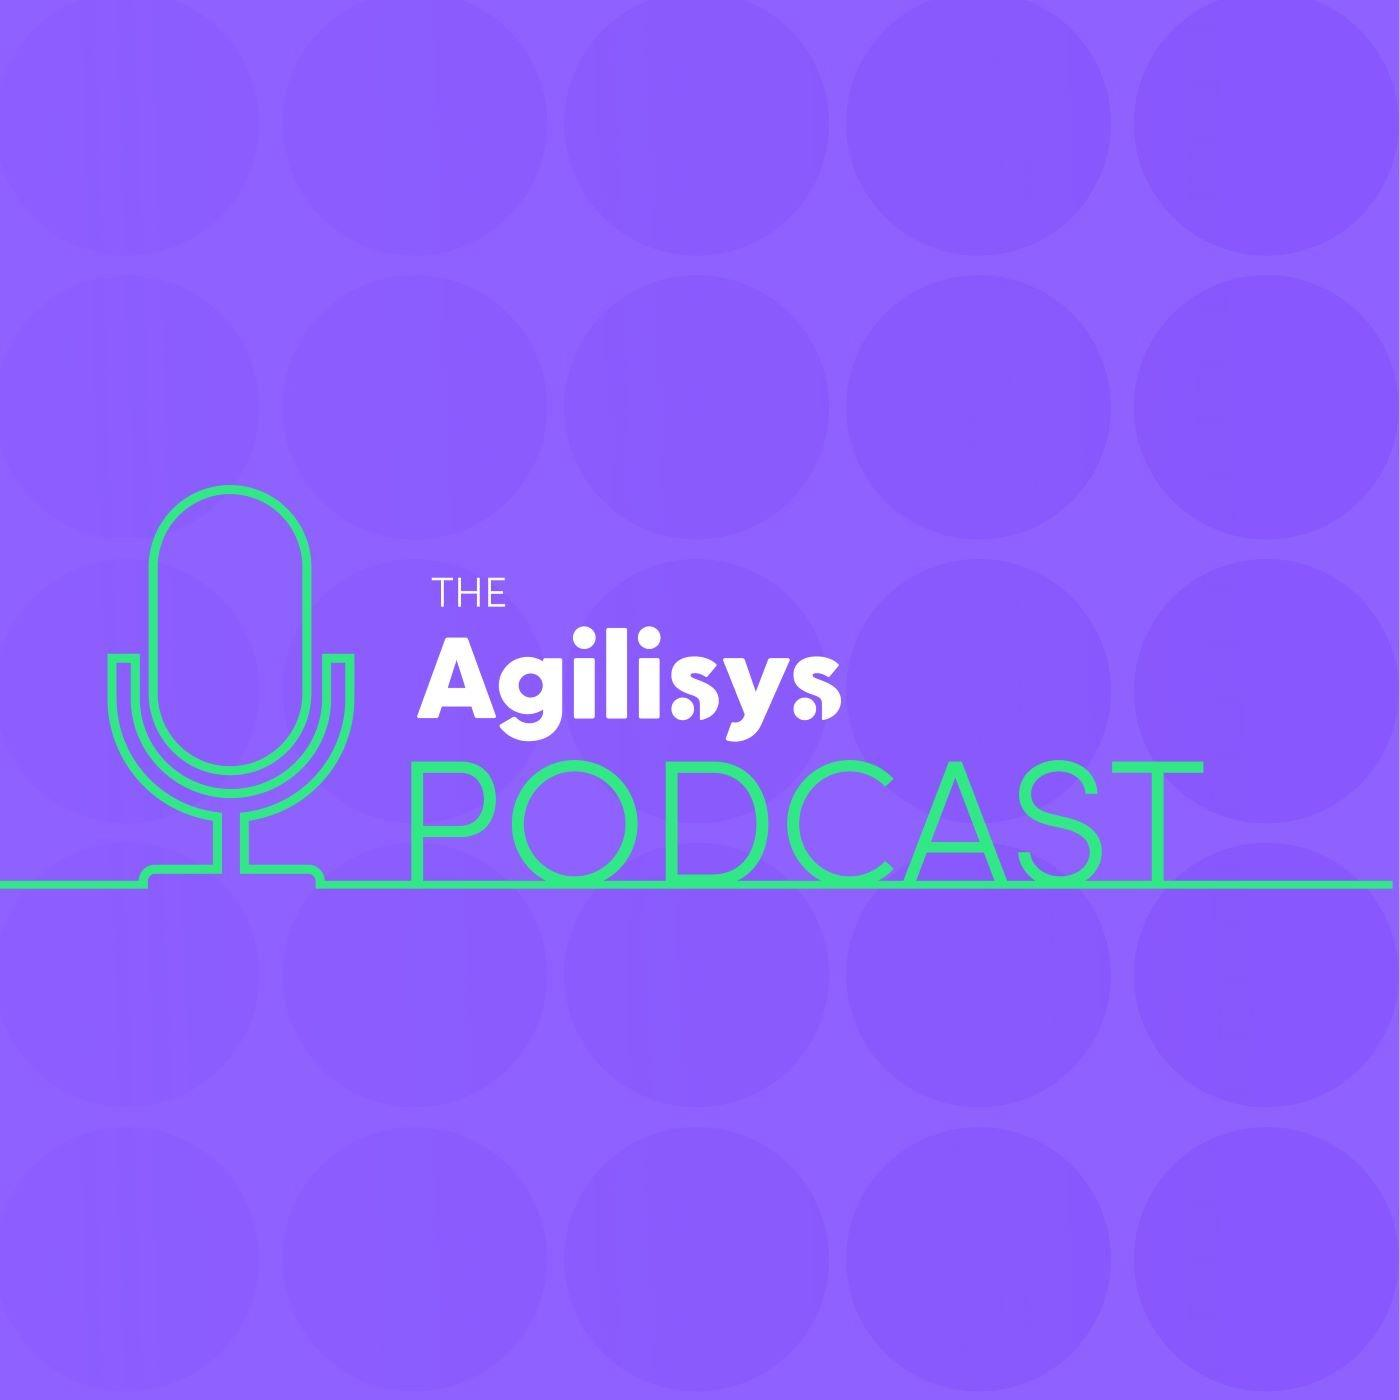 The Agilisys Podcast: Transforming health and care